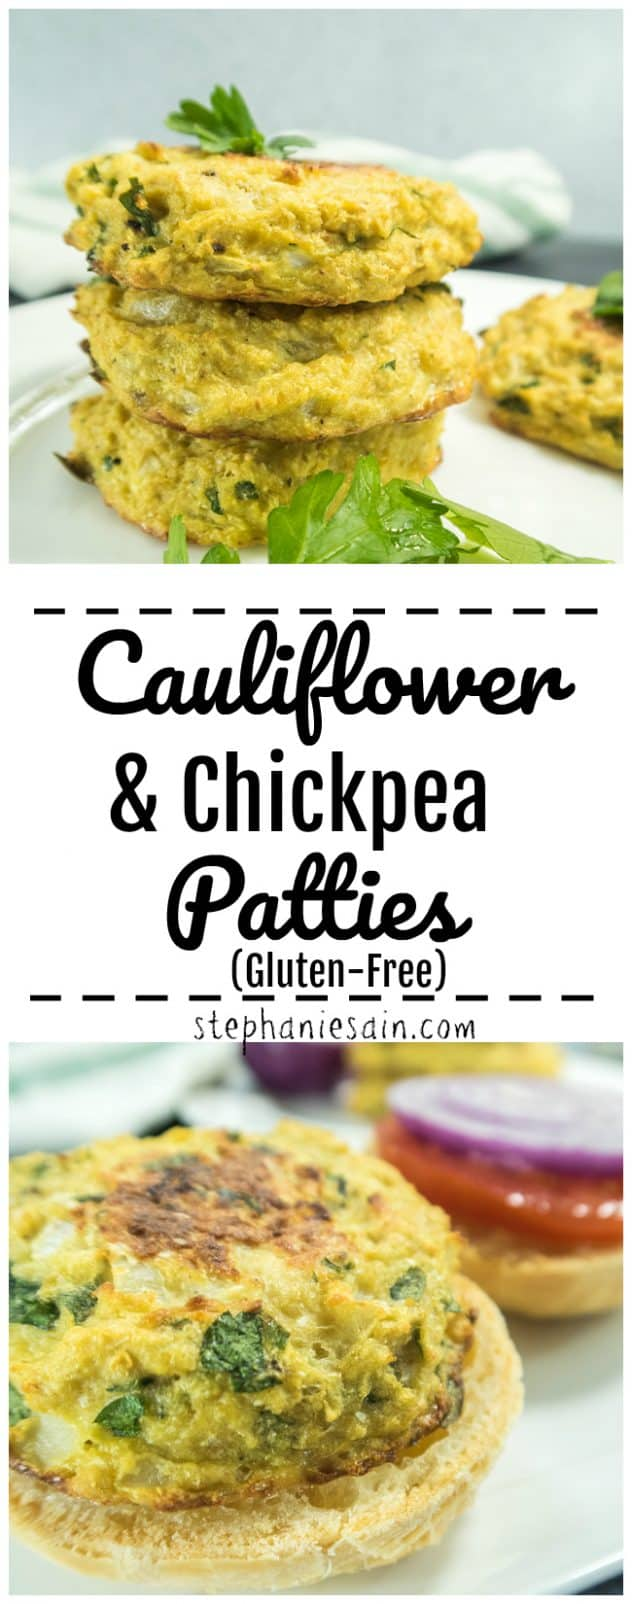 These Cauliflower & Chickpea patties are high in protein & super delicious. Great topped with all your favorite veggie burger toppings or even served cold as a snack. Gluten Free & Vegetarian.